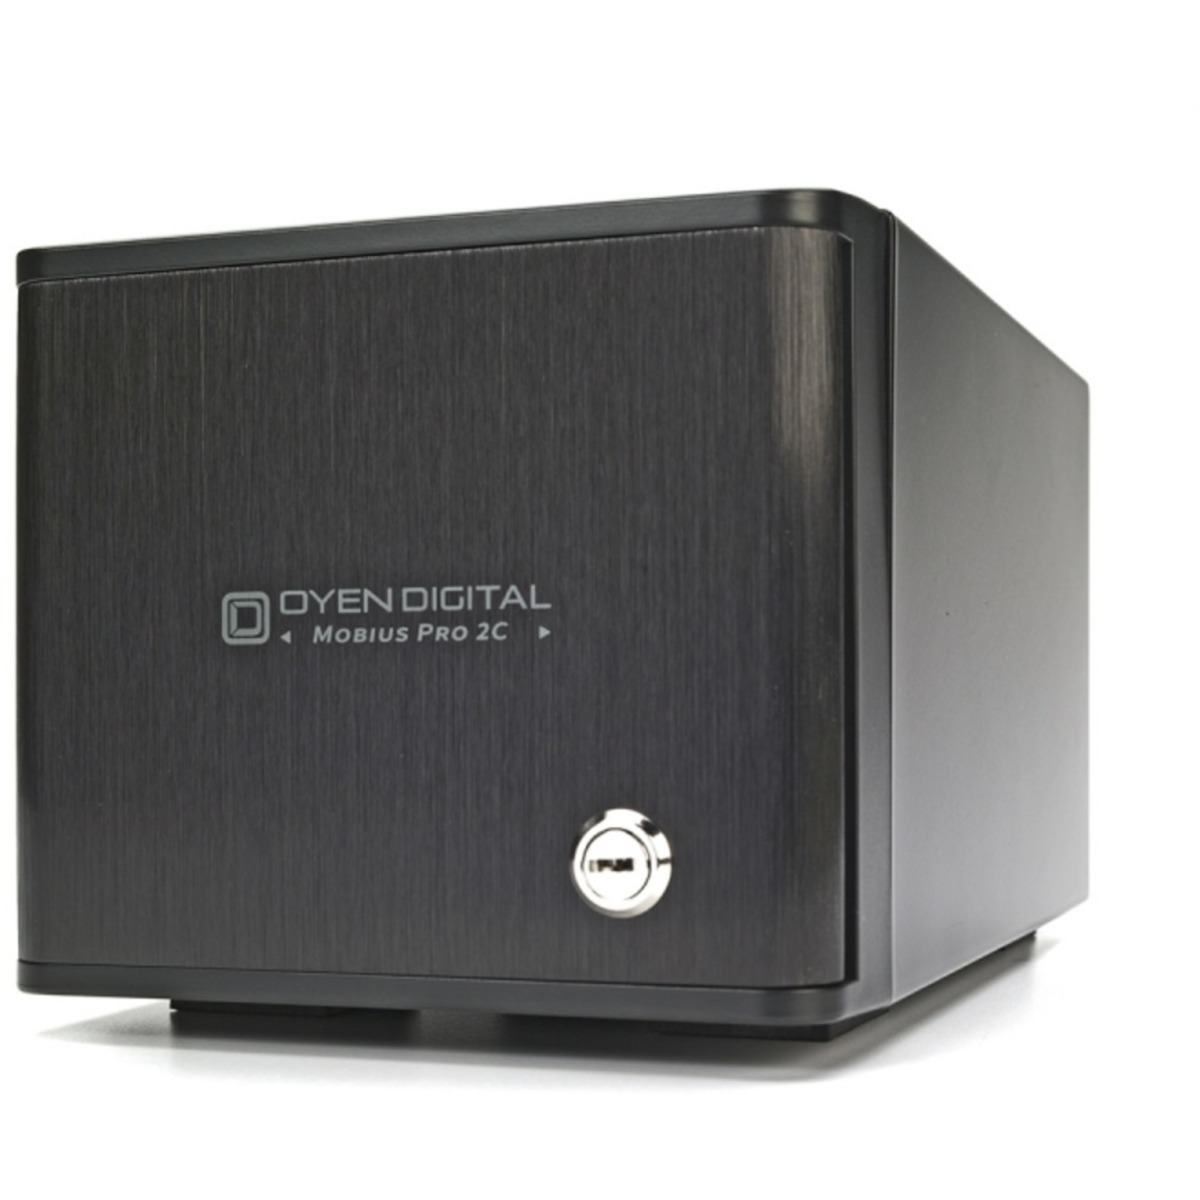 buy $512 OYEN Mobius Pro 2C 2-Bay USB-C RAID 8tb Desktop DAS - Direct Attached Storage Device 2x4000gb Seagate IronWolf Pro ST4000NE001 3.5 7200rpm SATA 6Gb/s HDD NAS Class Drives Installed - Burn-In Tested - nas headquarters buy network attached storage server device das new raid-5 free shipping usa holiday new year clearance sale Mobius Pro 2C 2-Bay USB-C RAID